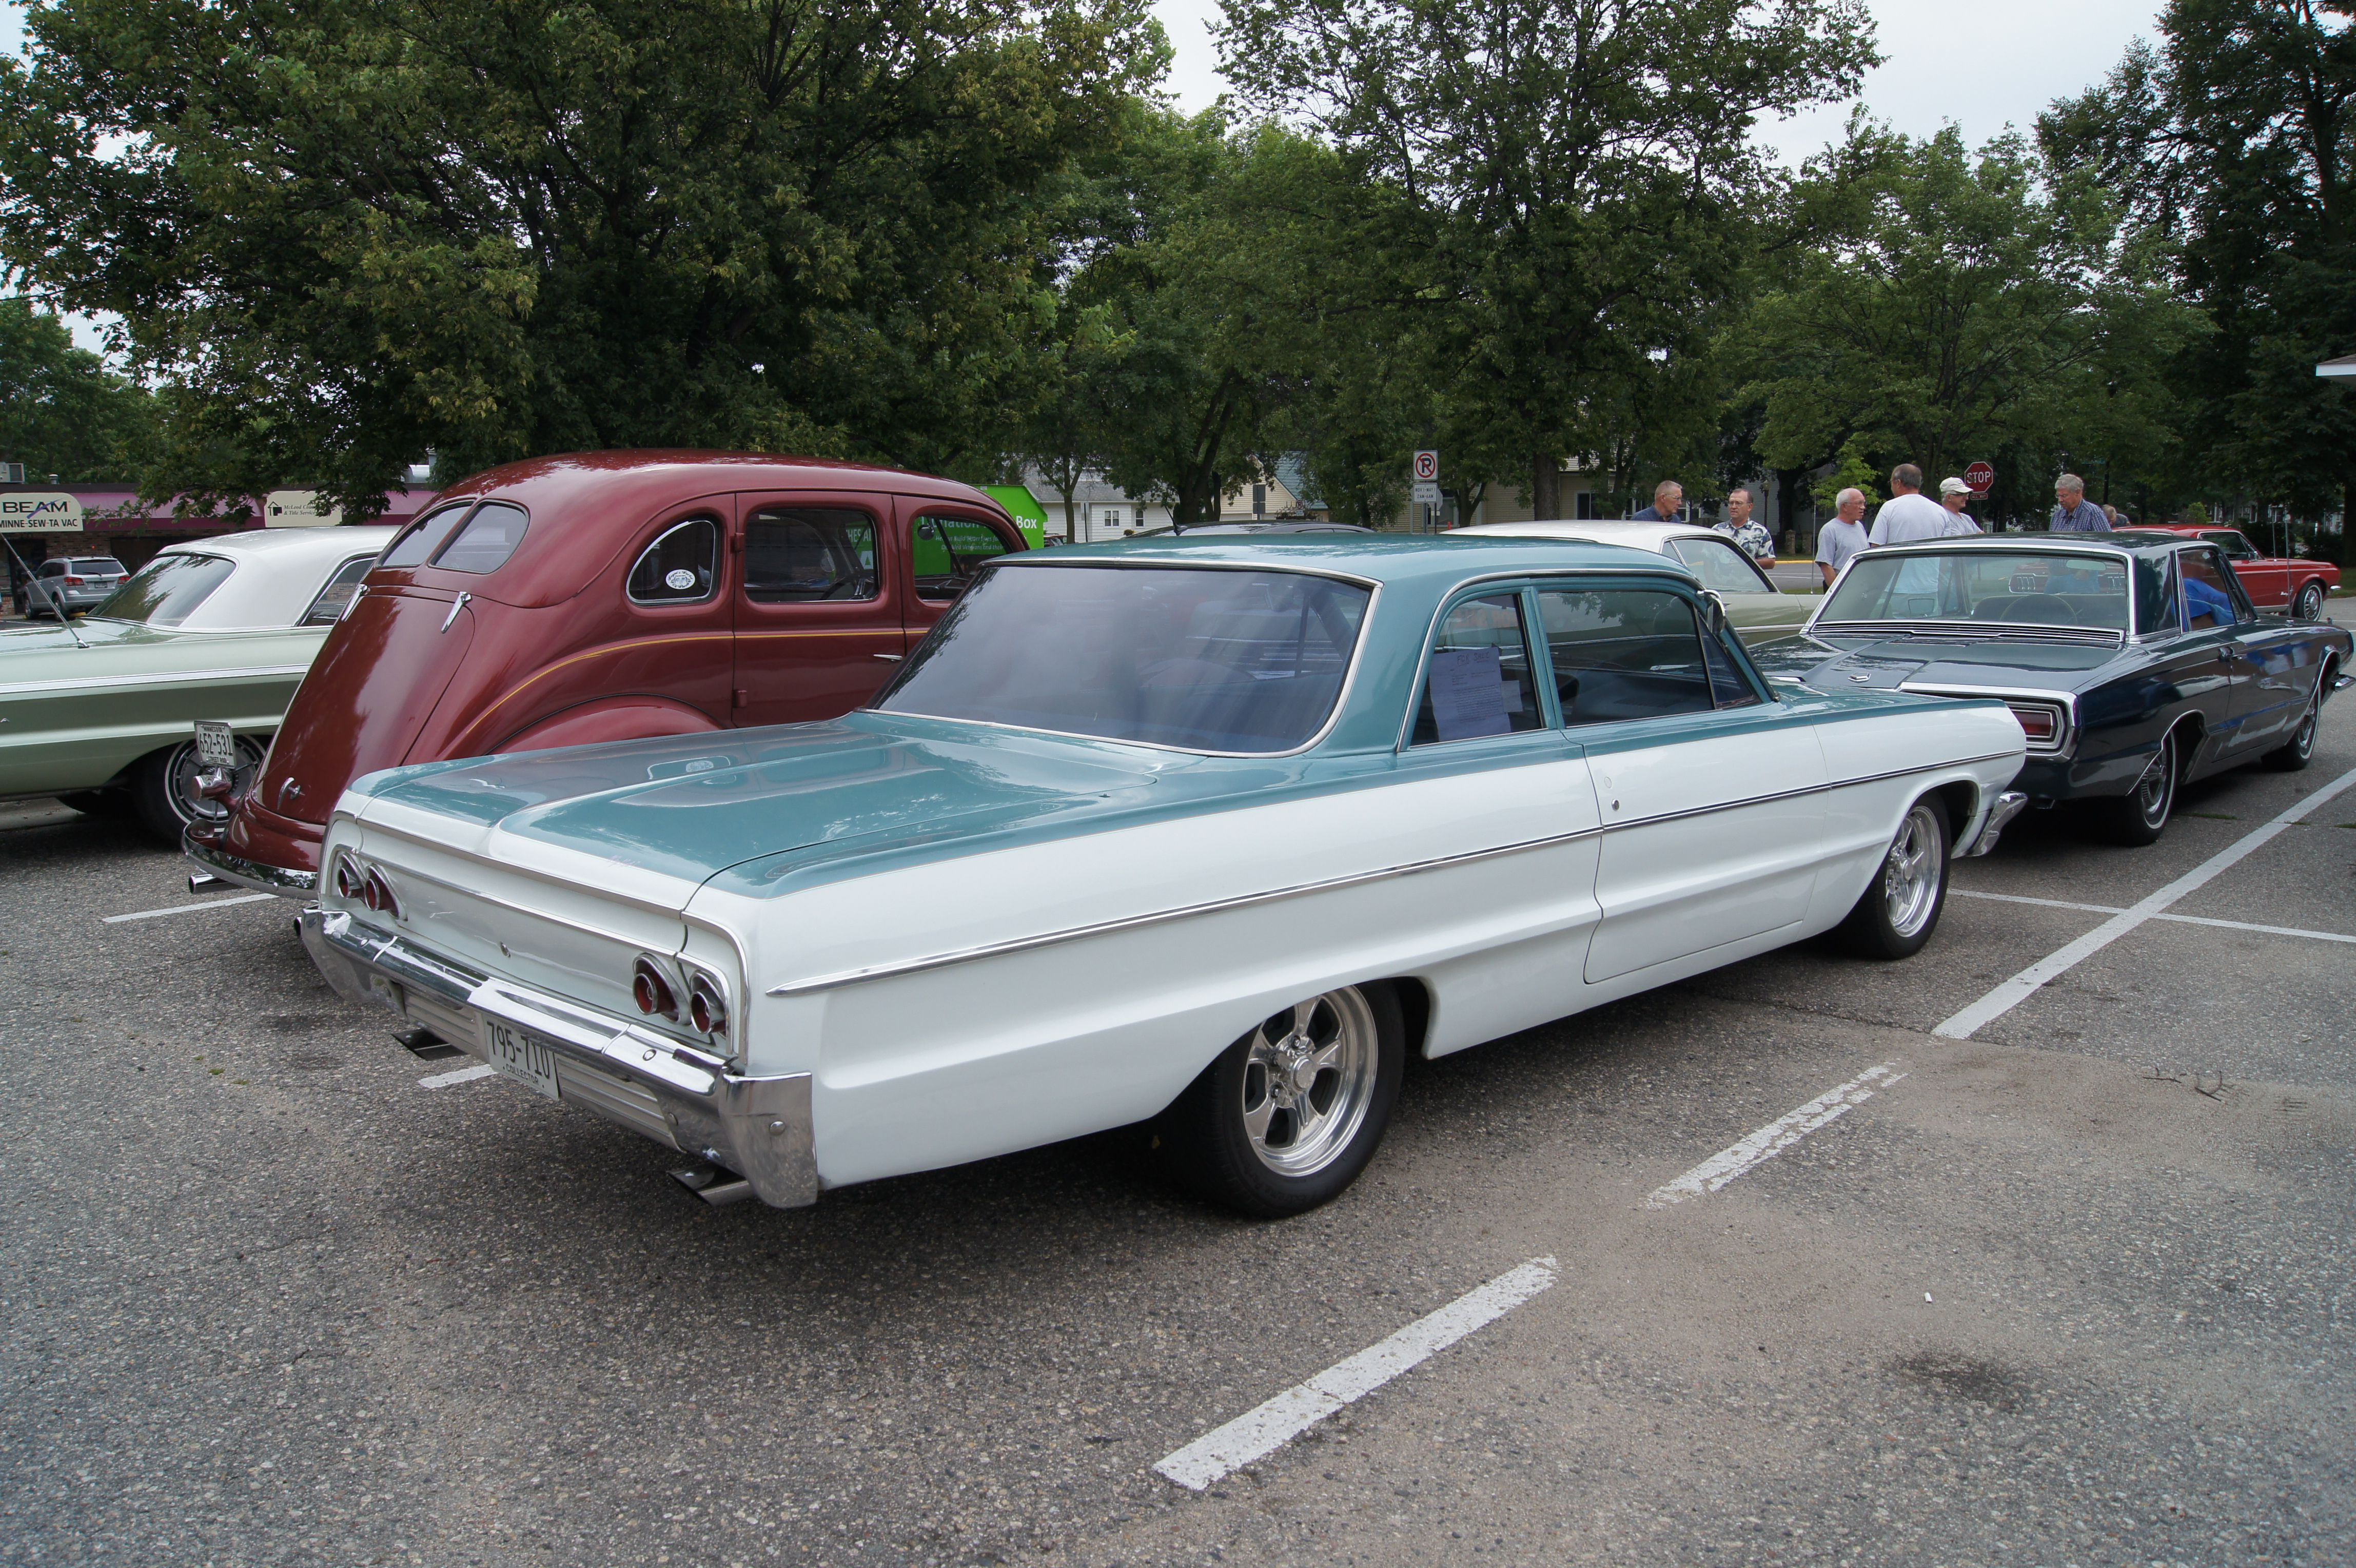 Chevrolet biscayne 1961 chevy biscayne 350 4 speed full resto mod gorgeous bel air biscayne caprice delray_ impala roundup _ pinterest modified cars